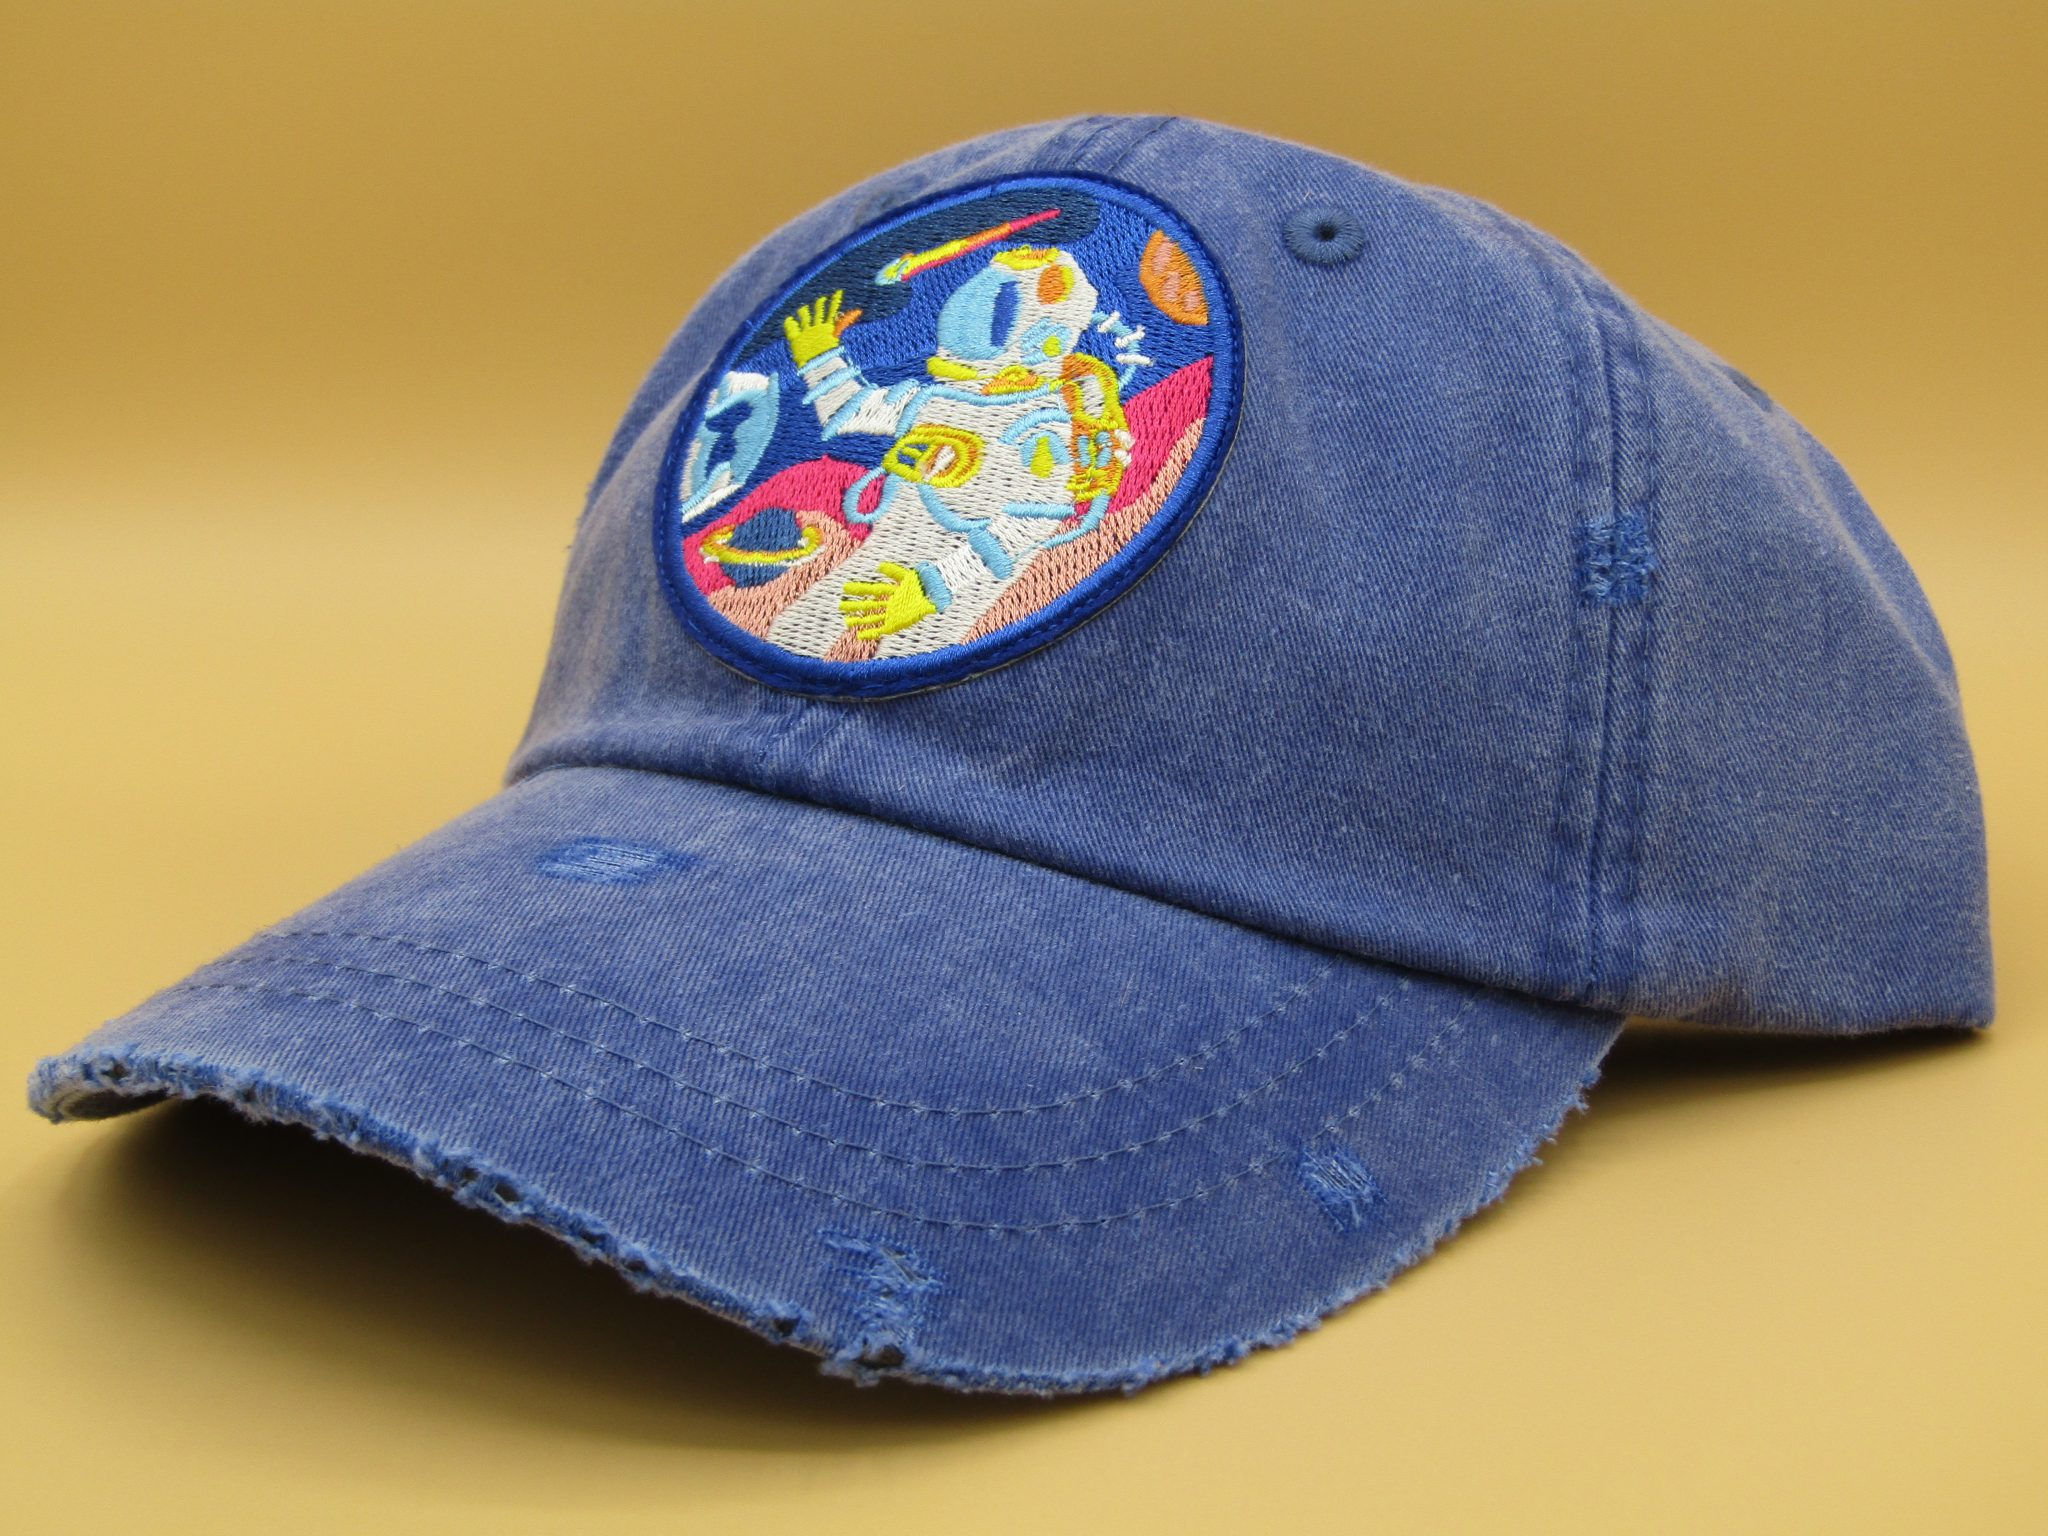 10 Cool Hats That You Should Get